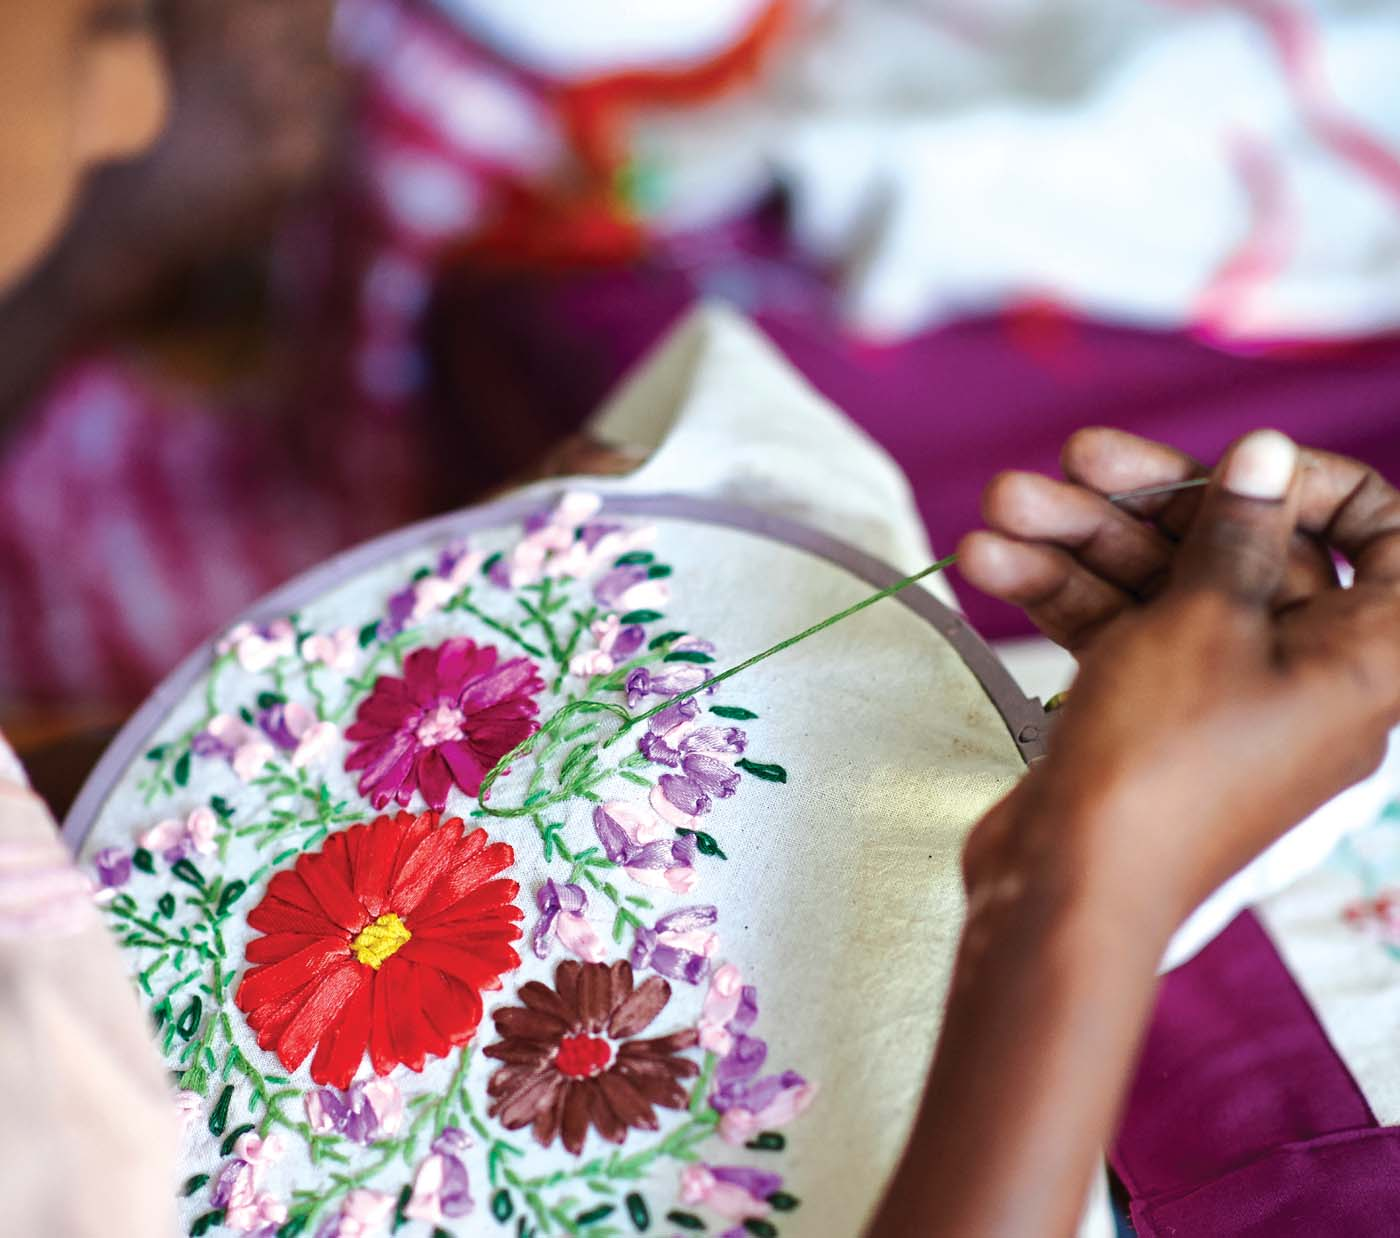 Women attending the Foundations Women's Development Programme benefits from threadwork and ribbon embroidery classes. In the future, women who show potential will be supported via the MJF Charitable Foundation's Small Entrepreneur Programme to enhance their chosen livelihood.